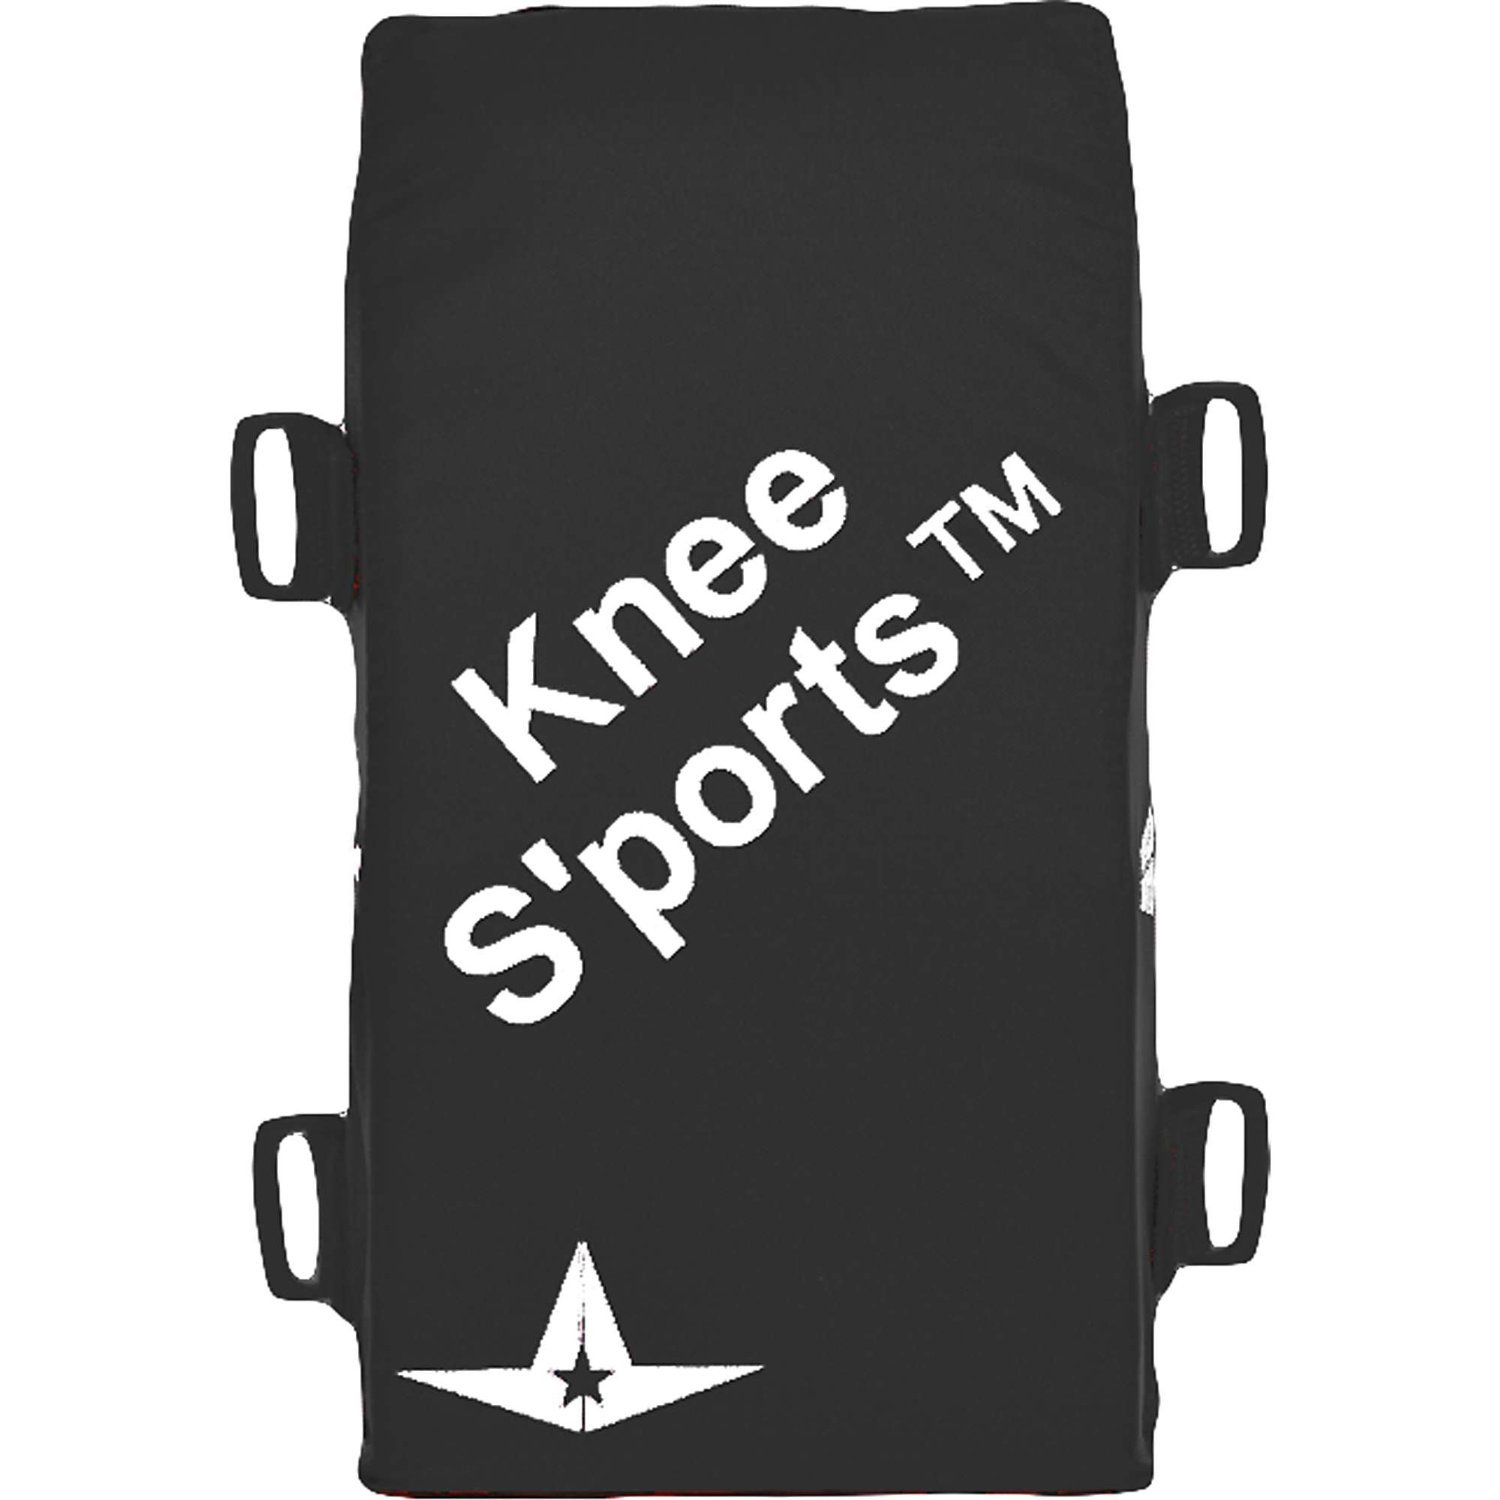 All-Star Youth Knee S-Ports Knee Pads Black